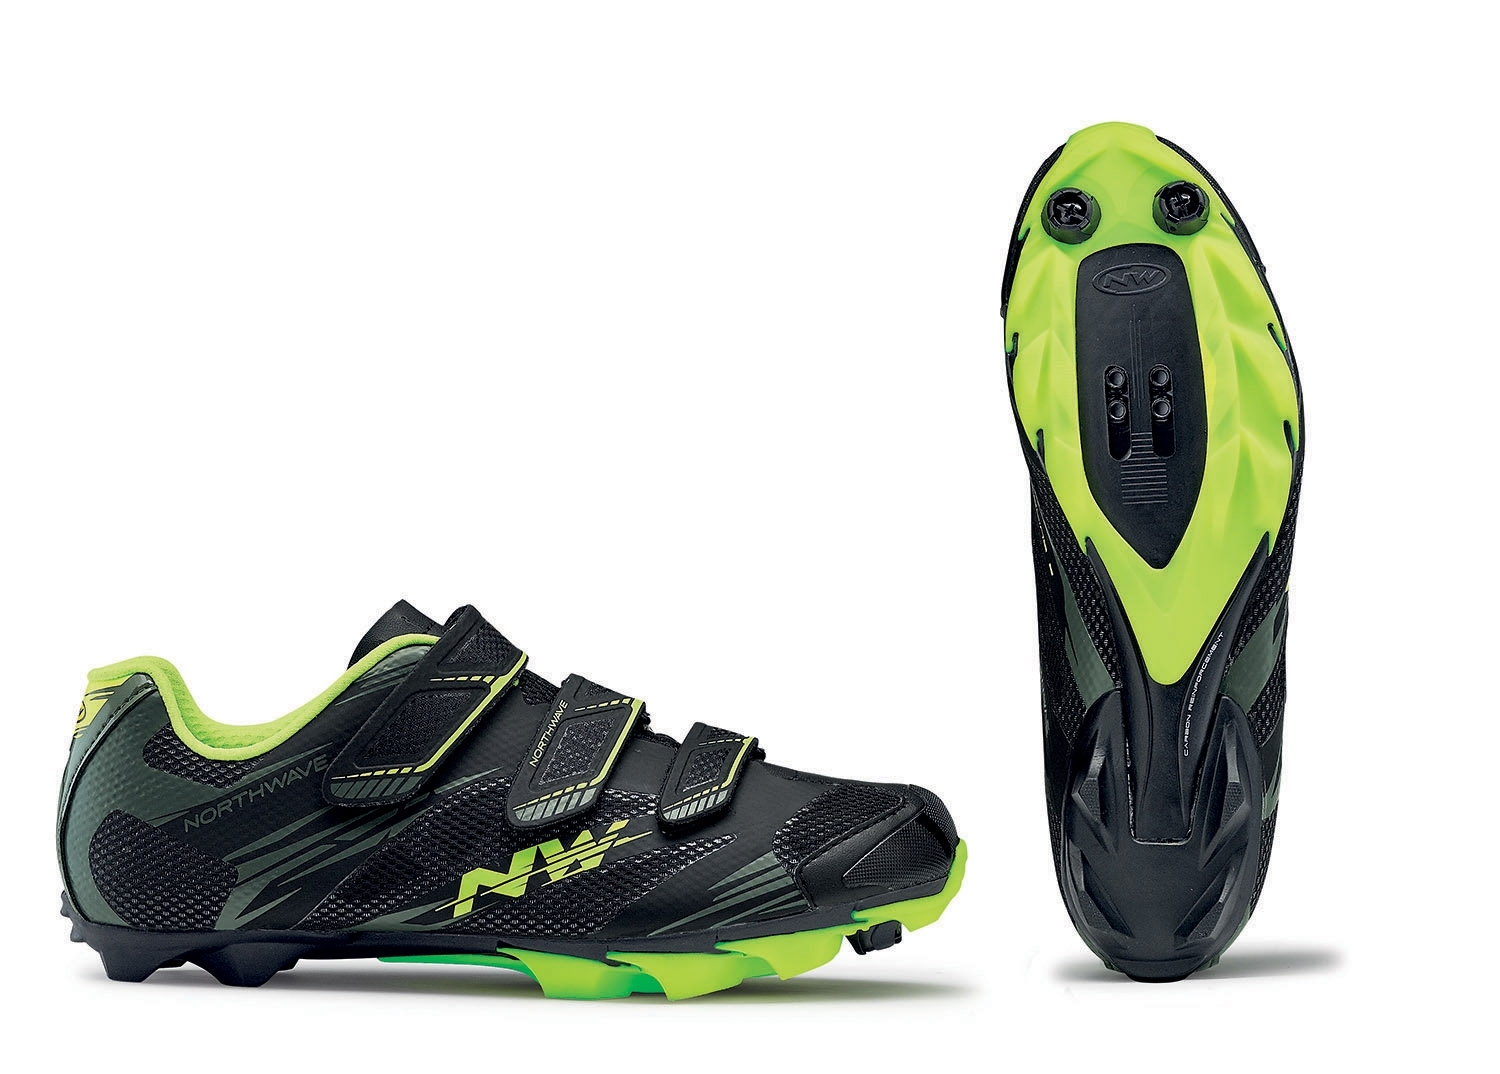 NORTHWAVE Man MTB XC shoes SCORPIUS 2 black/military/yellow fluo